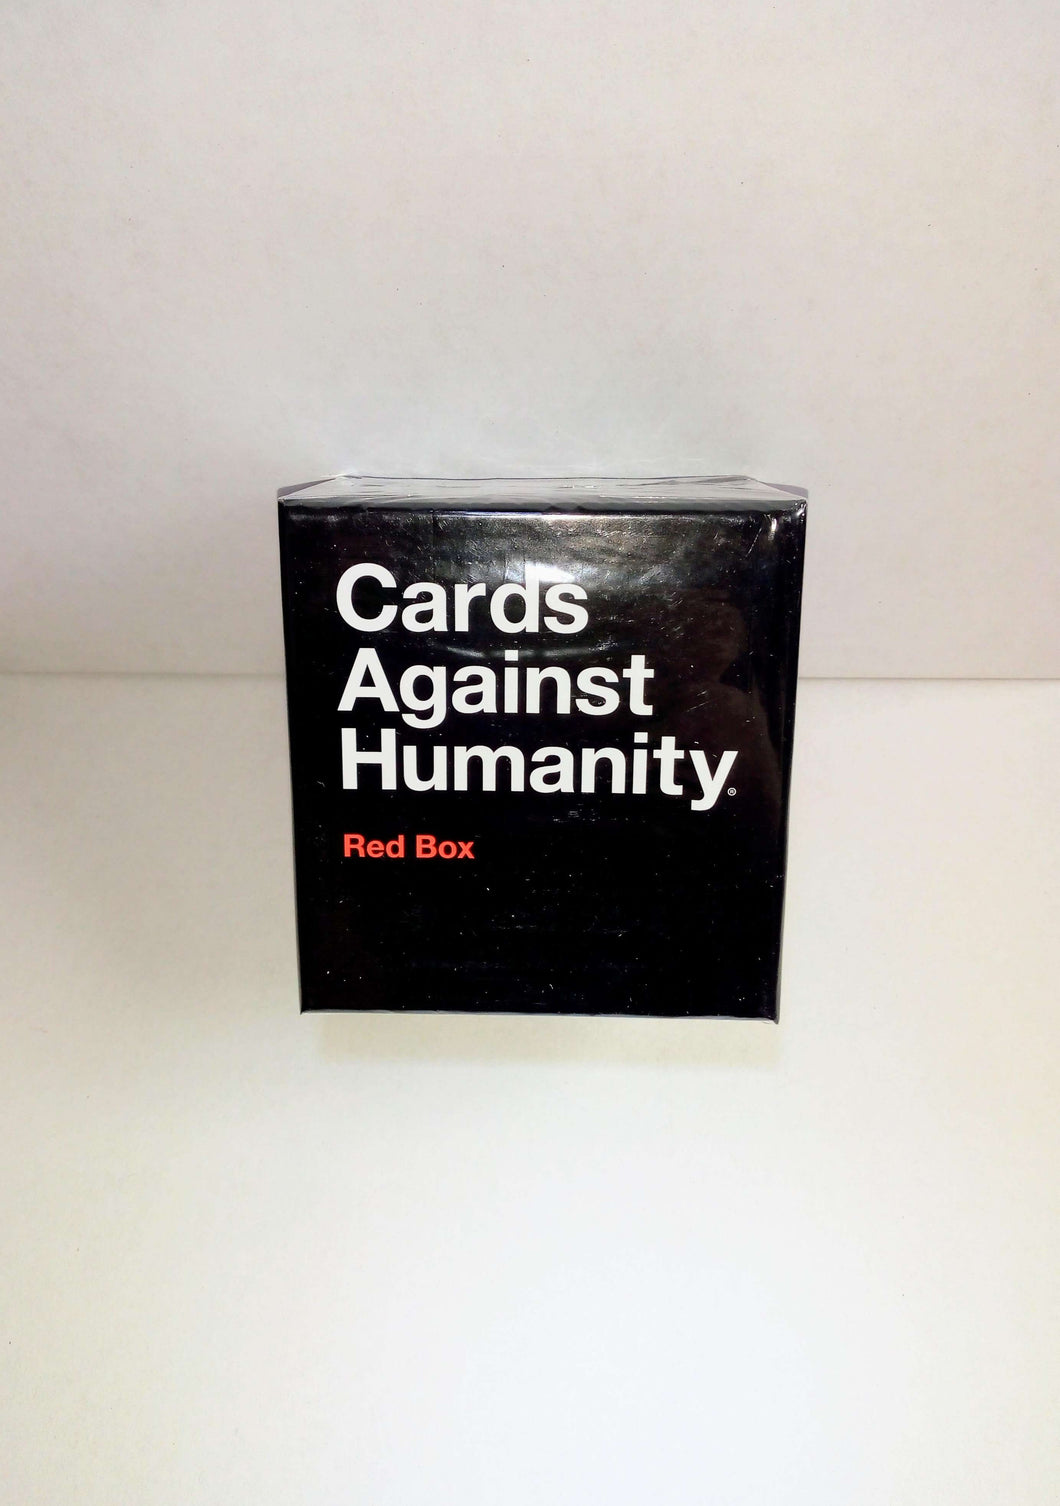 Cards Against Humanity Red Box Expansion-board game-Cards Against Humanity-Dice and Counters